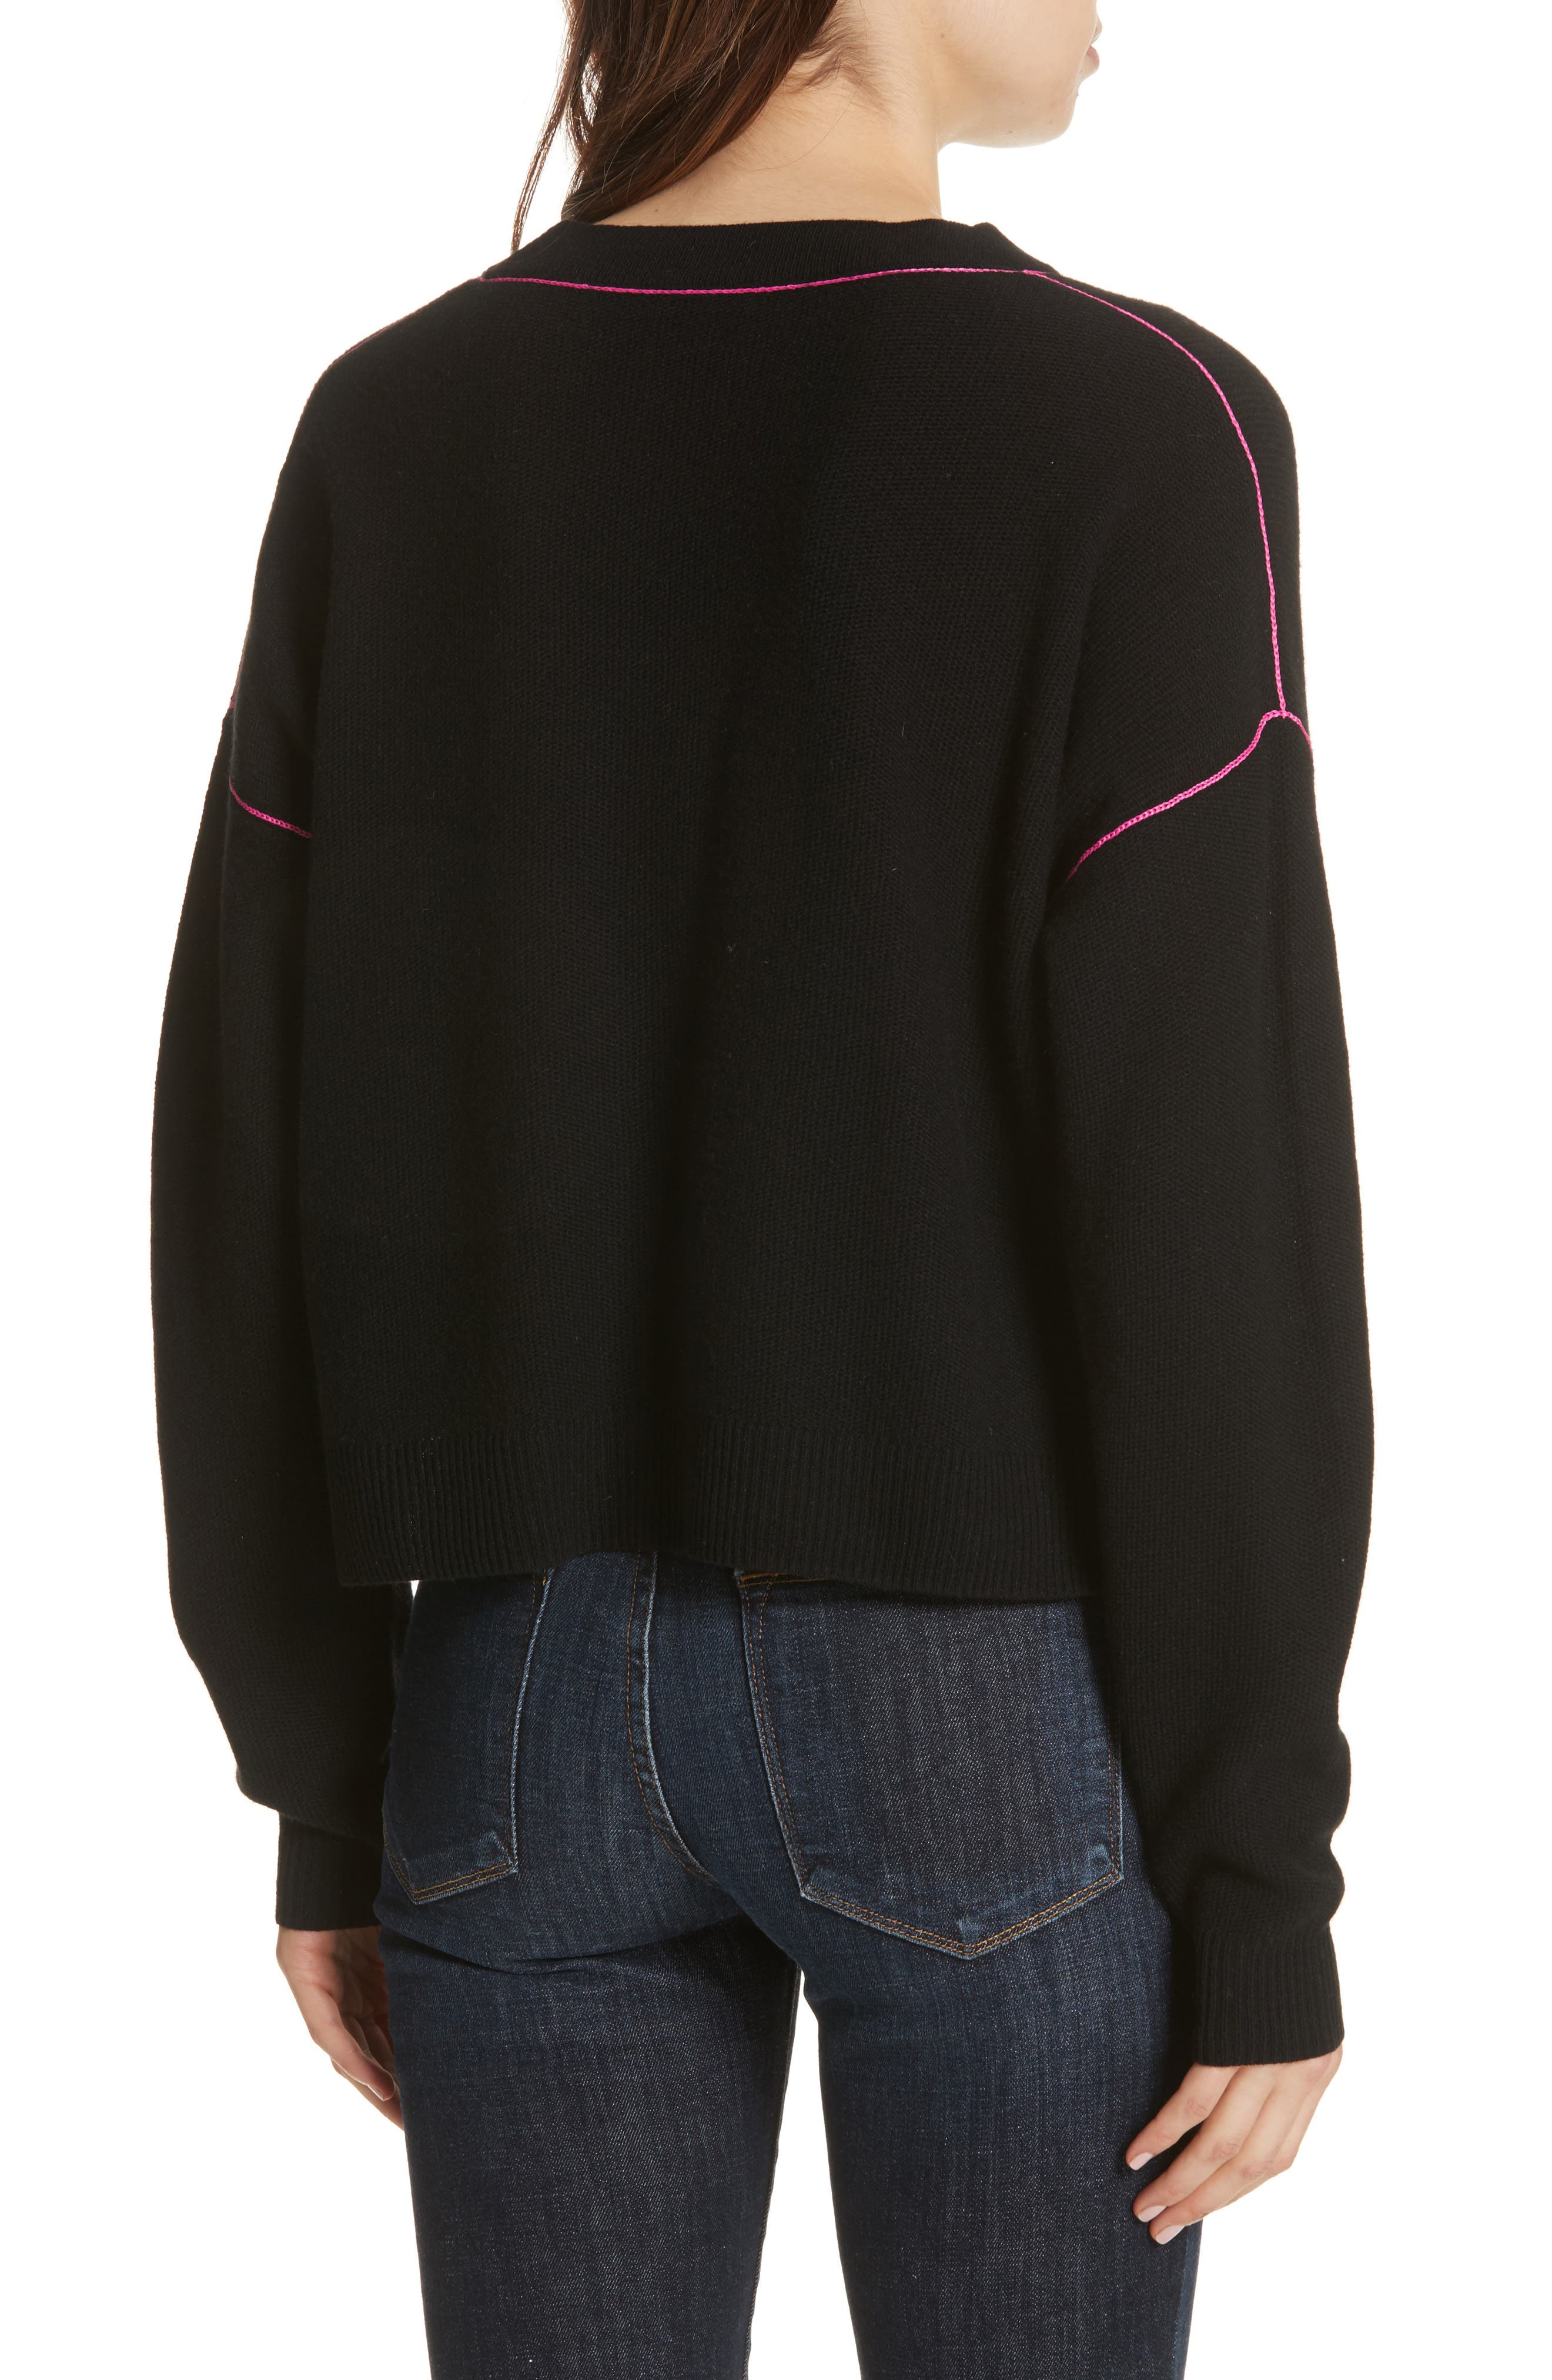 Benin Wool & Cashmere Sweater,                             Alternate thumbnail 2, color,